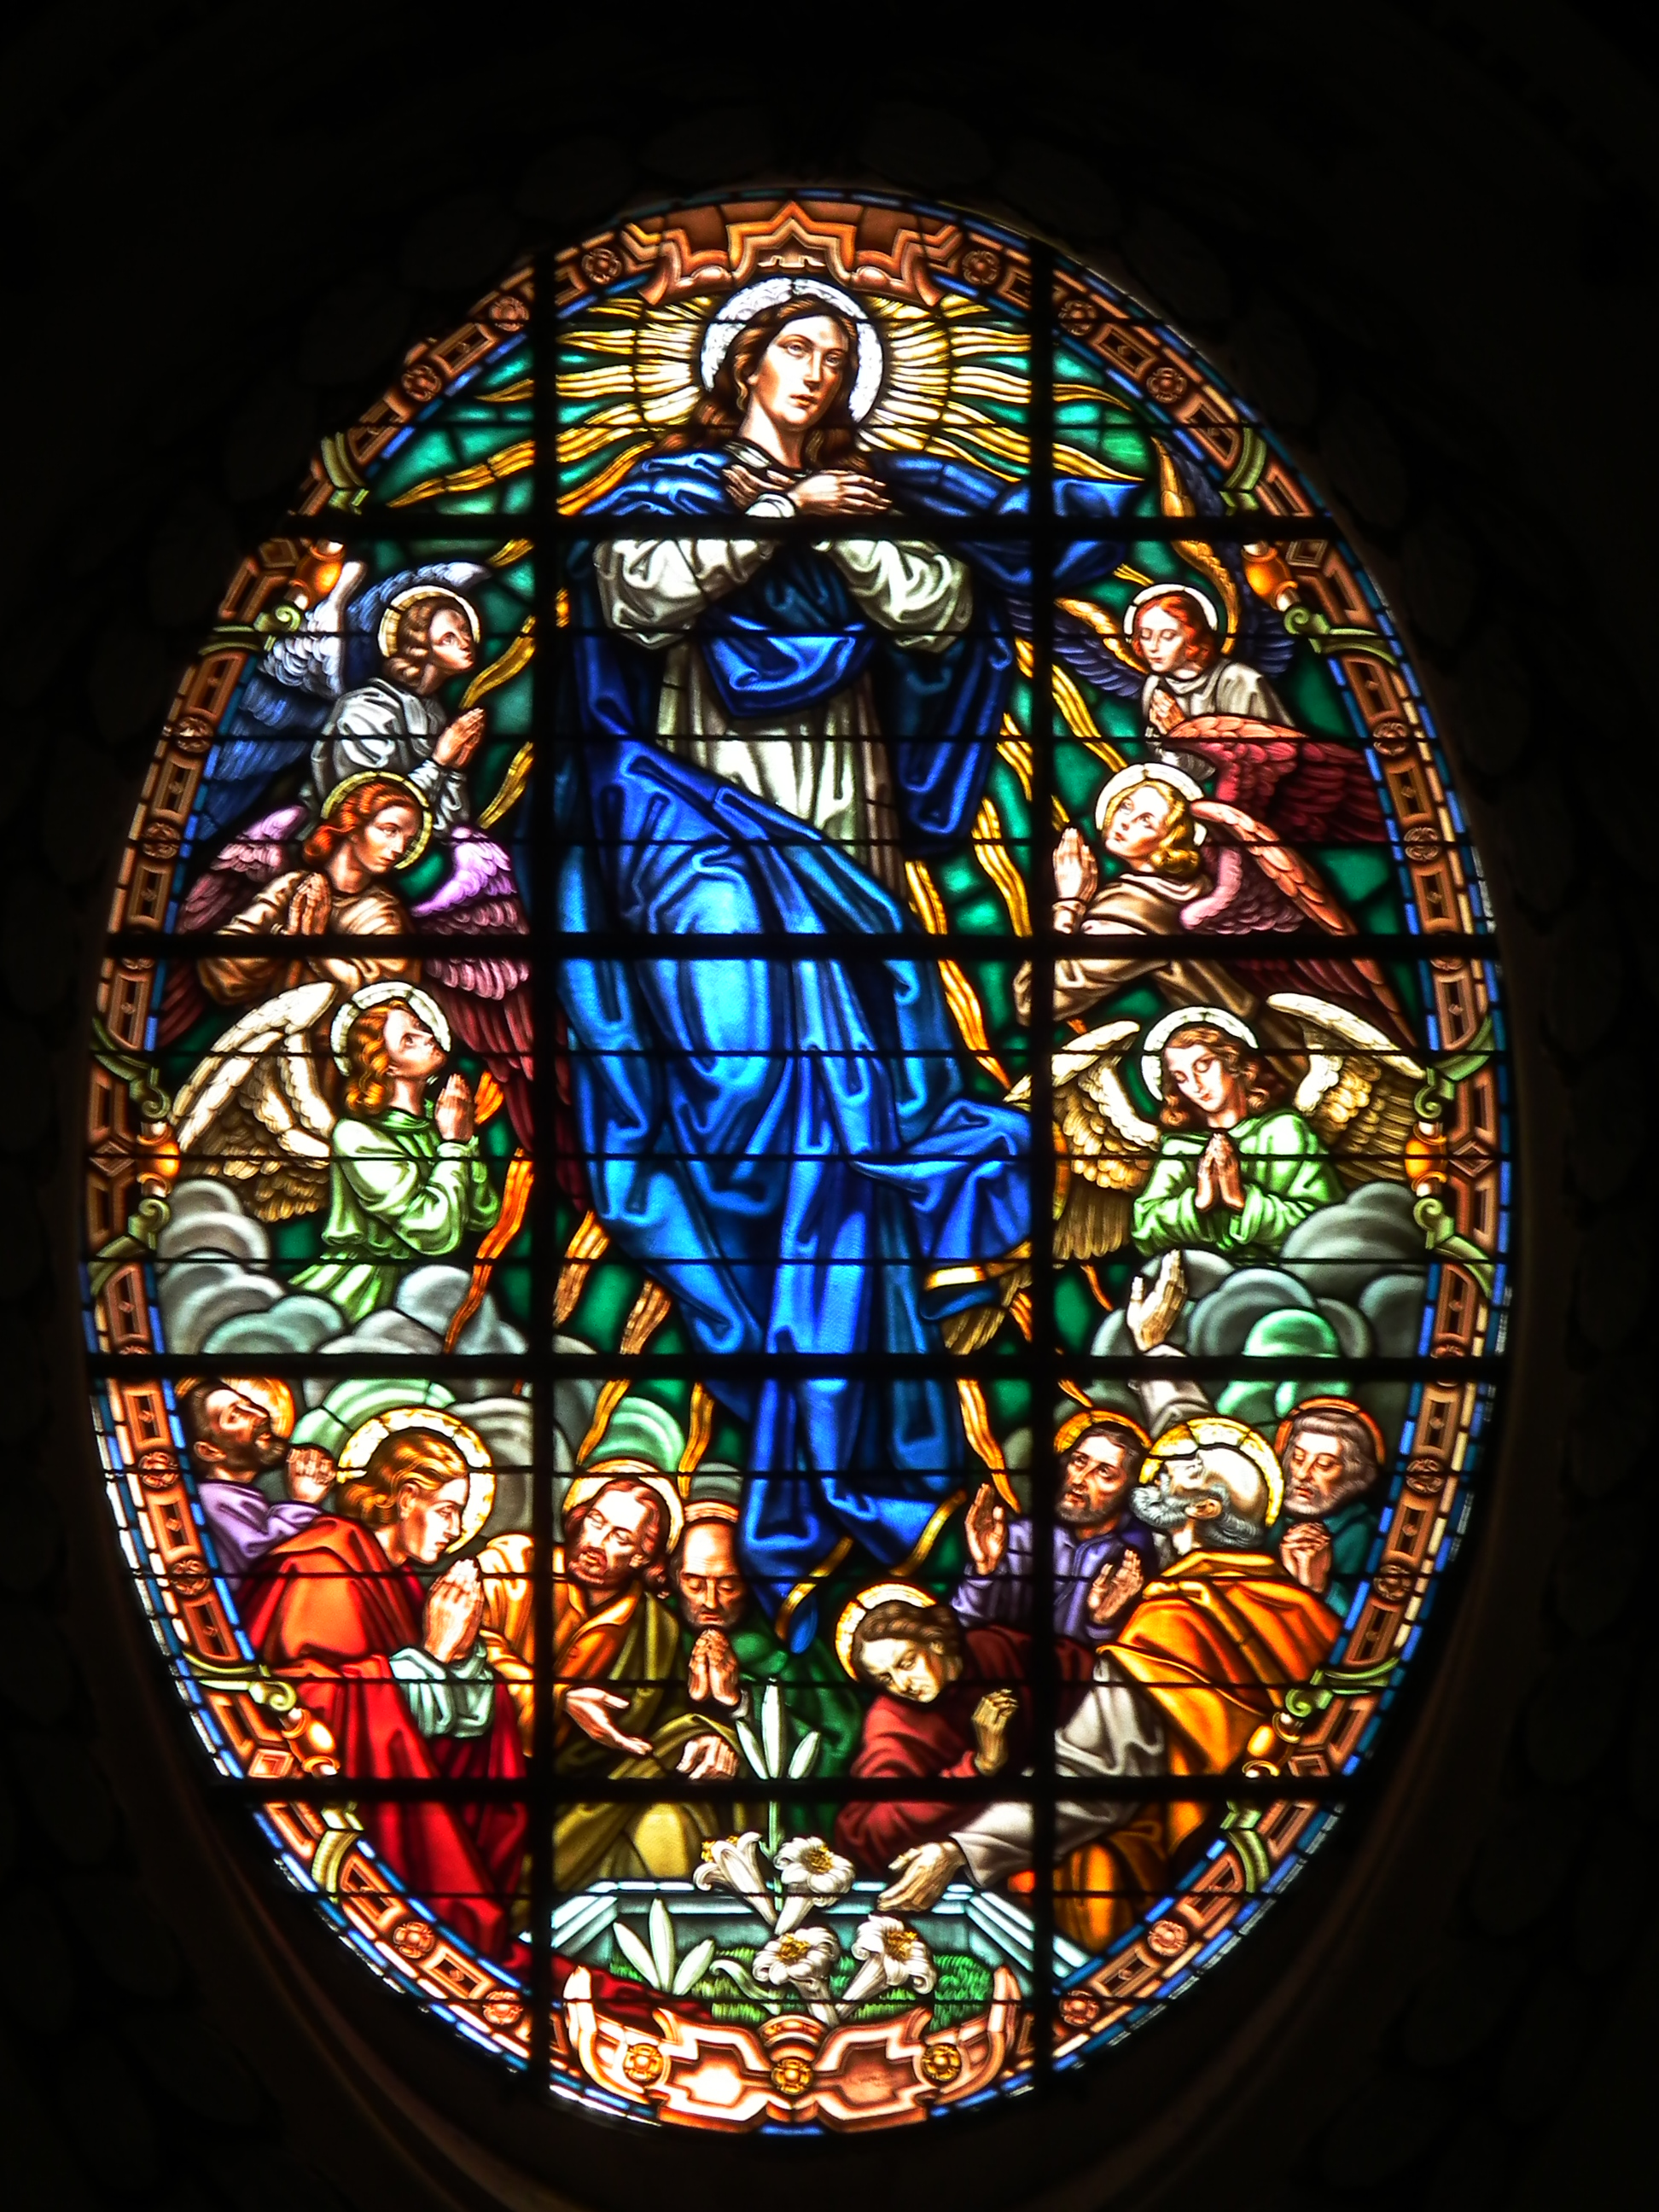 oval-window-with-mary-madonna.jpg